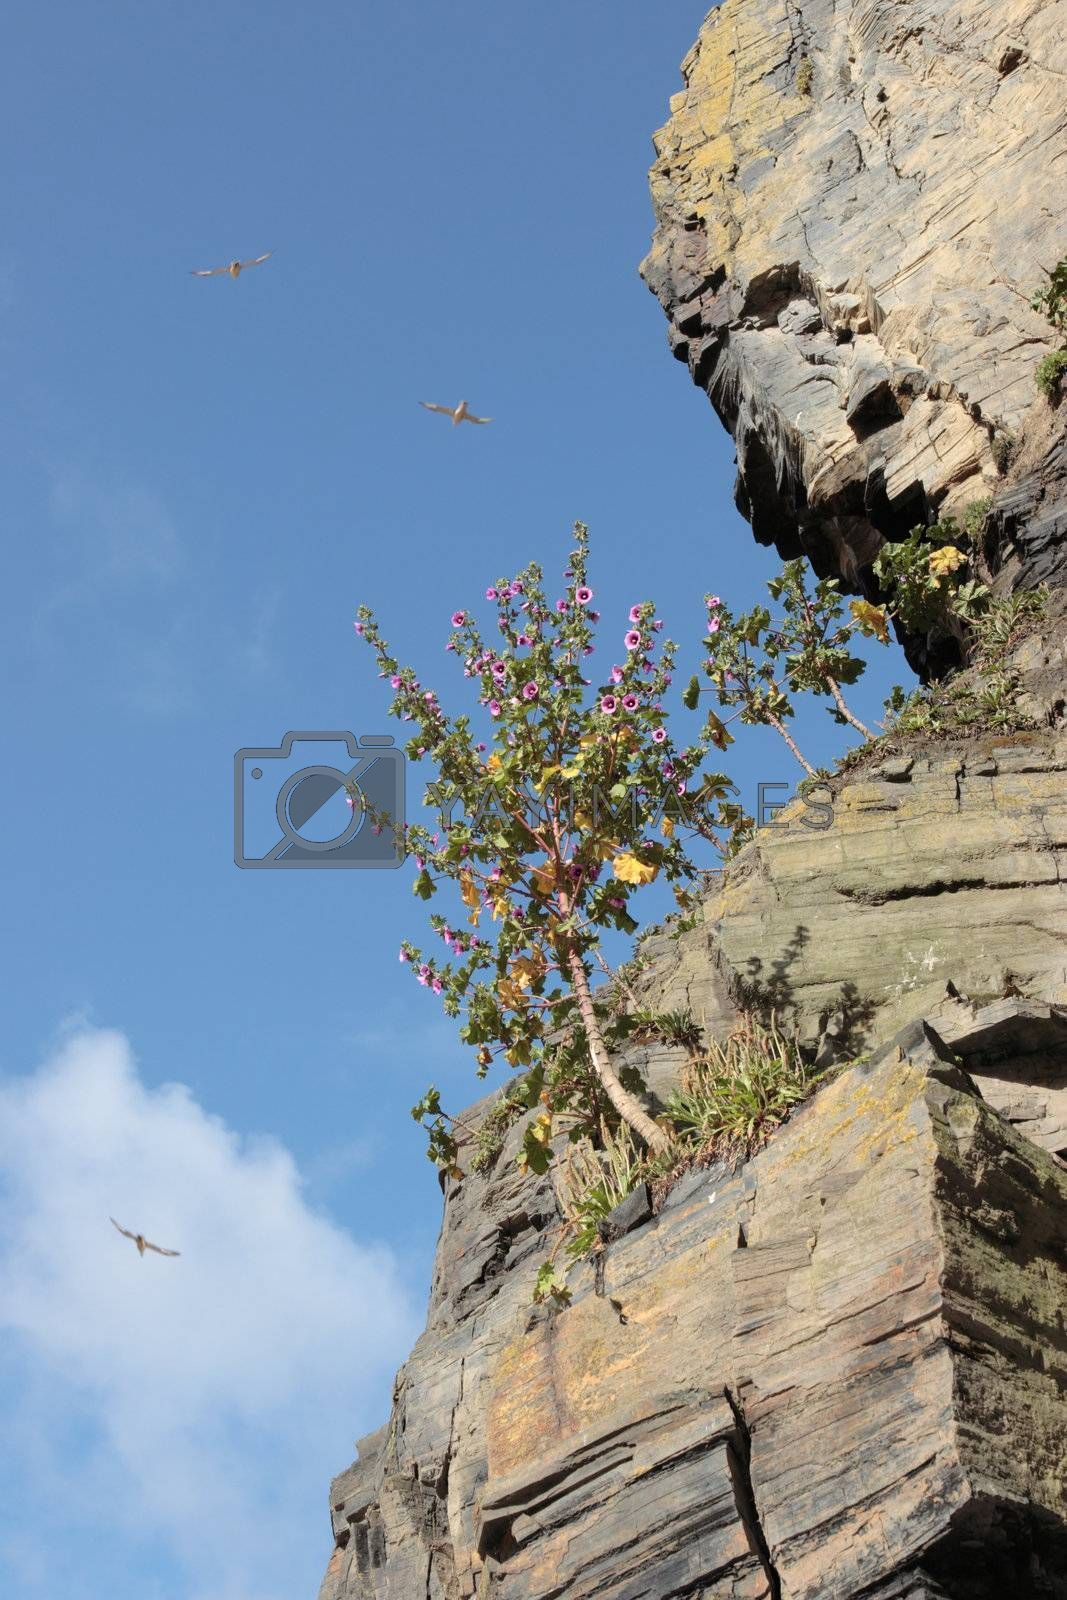 Royalty free image of tree in cliffs by morrbyte